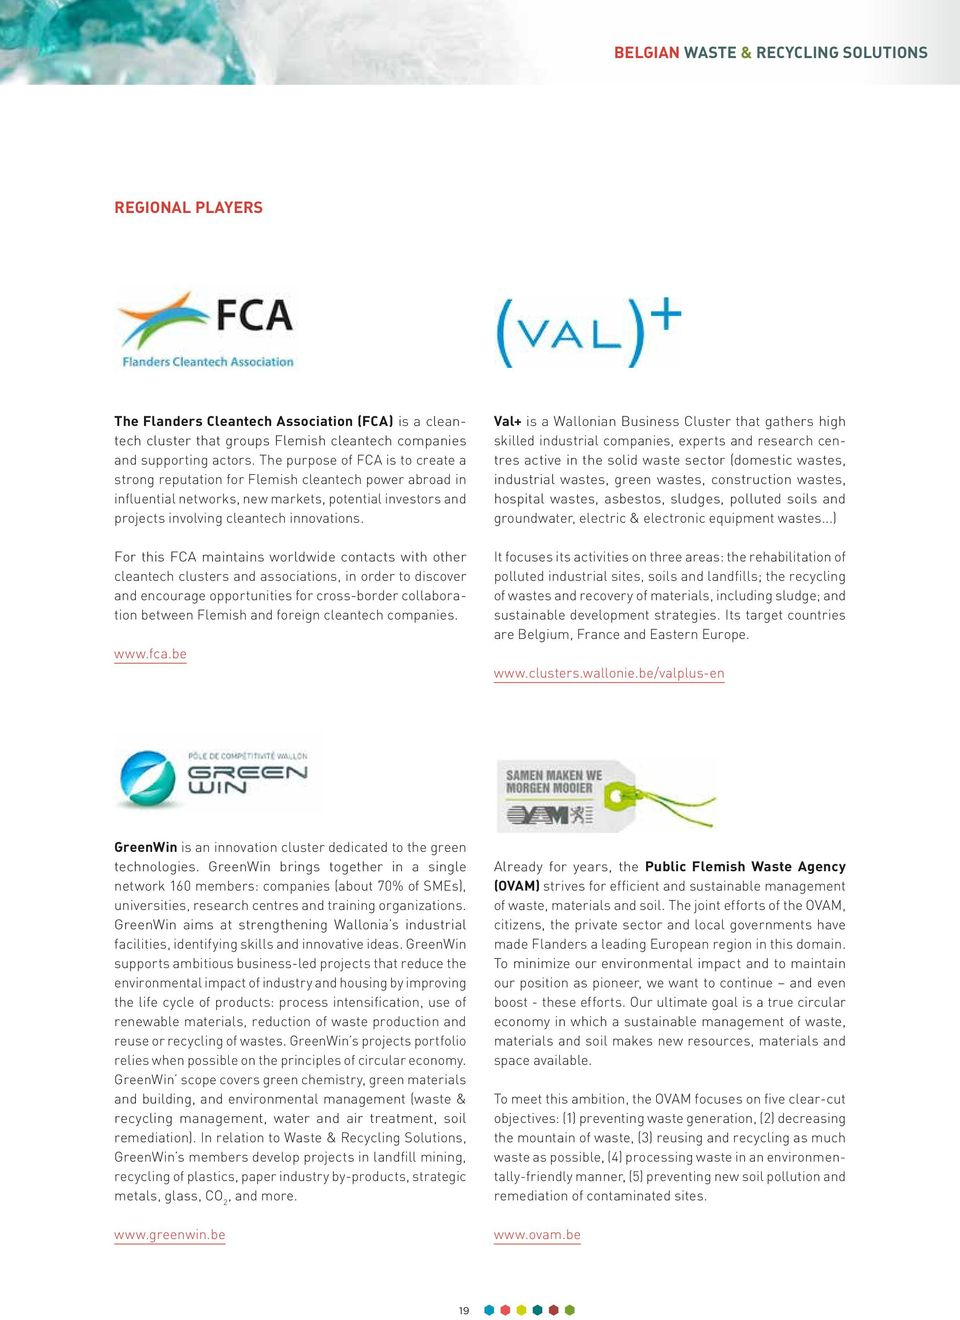 For this FCA maintains worldwide contacts with other cleantech clusters and associations, in order to discover and encourage opportunities for cross-border collaboration between Flemish and foreign